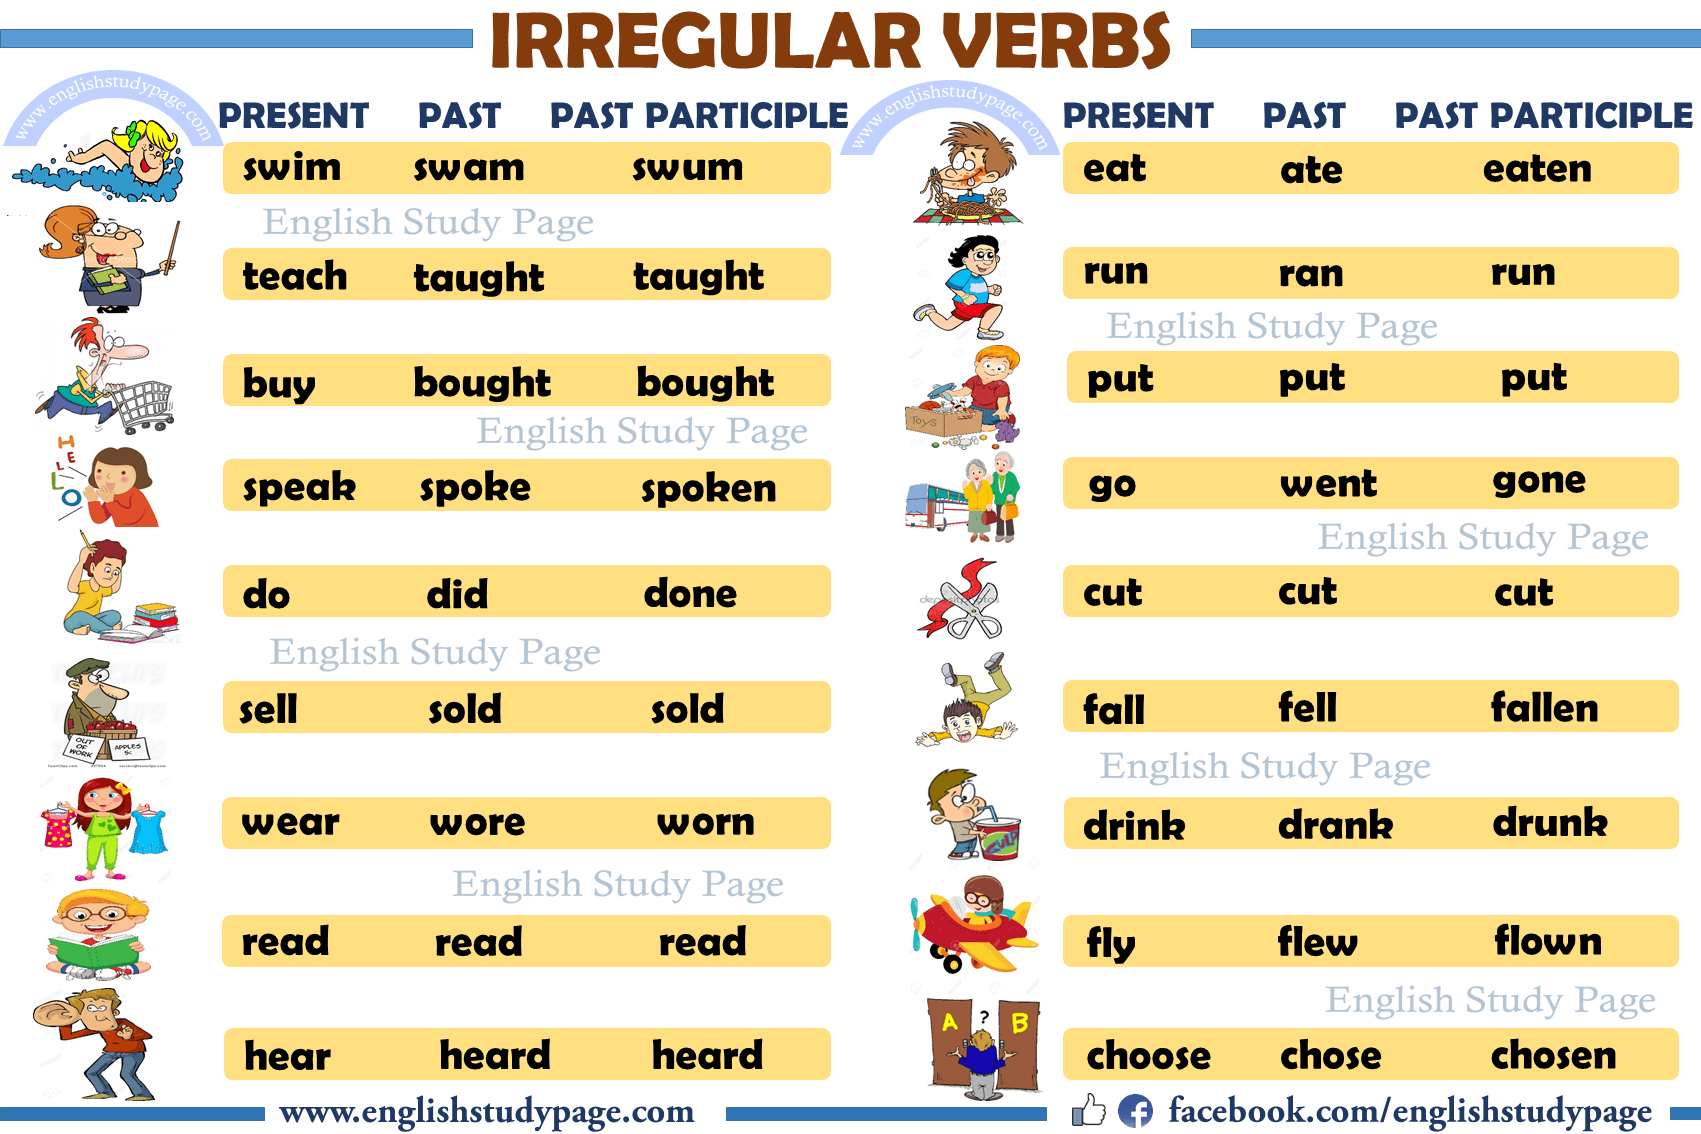 Spanish Verbs | Learn Spanish Verb ... - StudySpanish.com